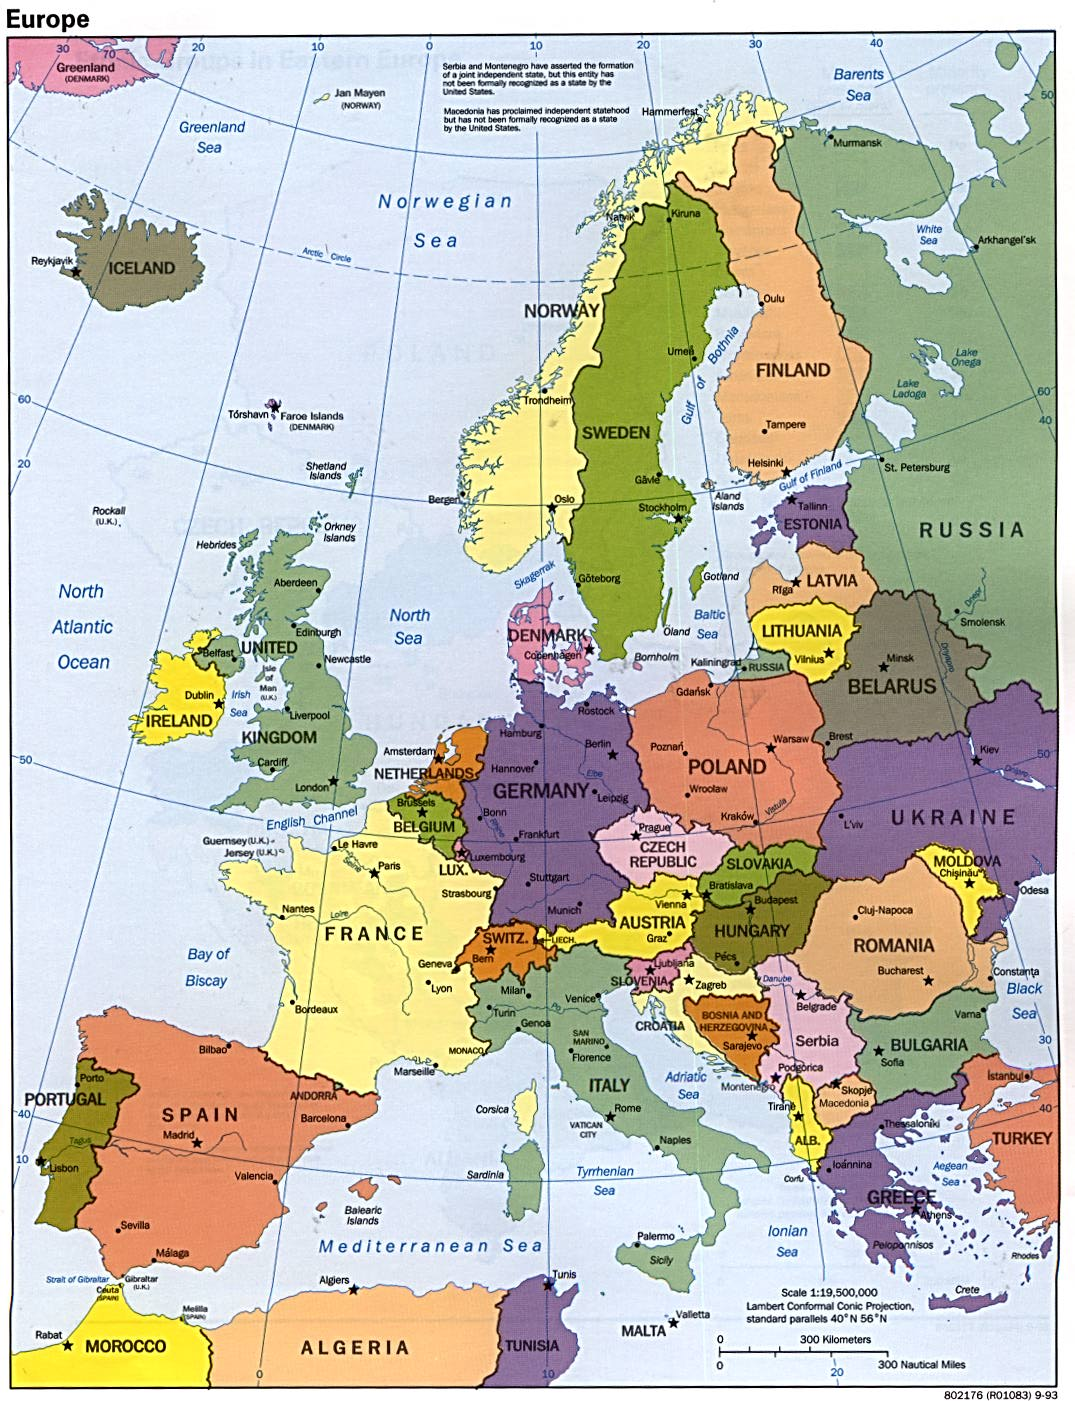 Europe political map 1993